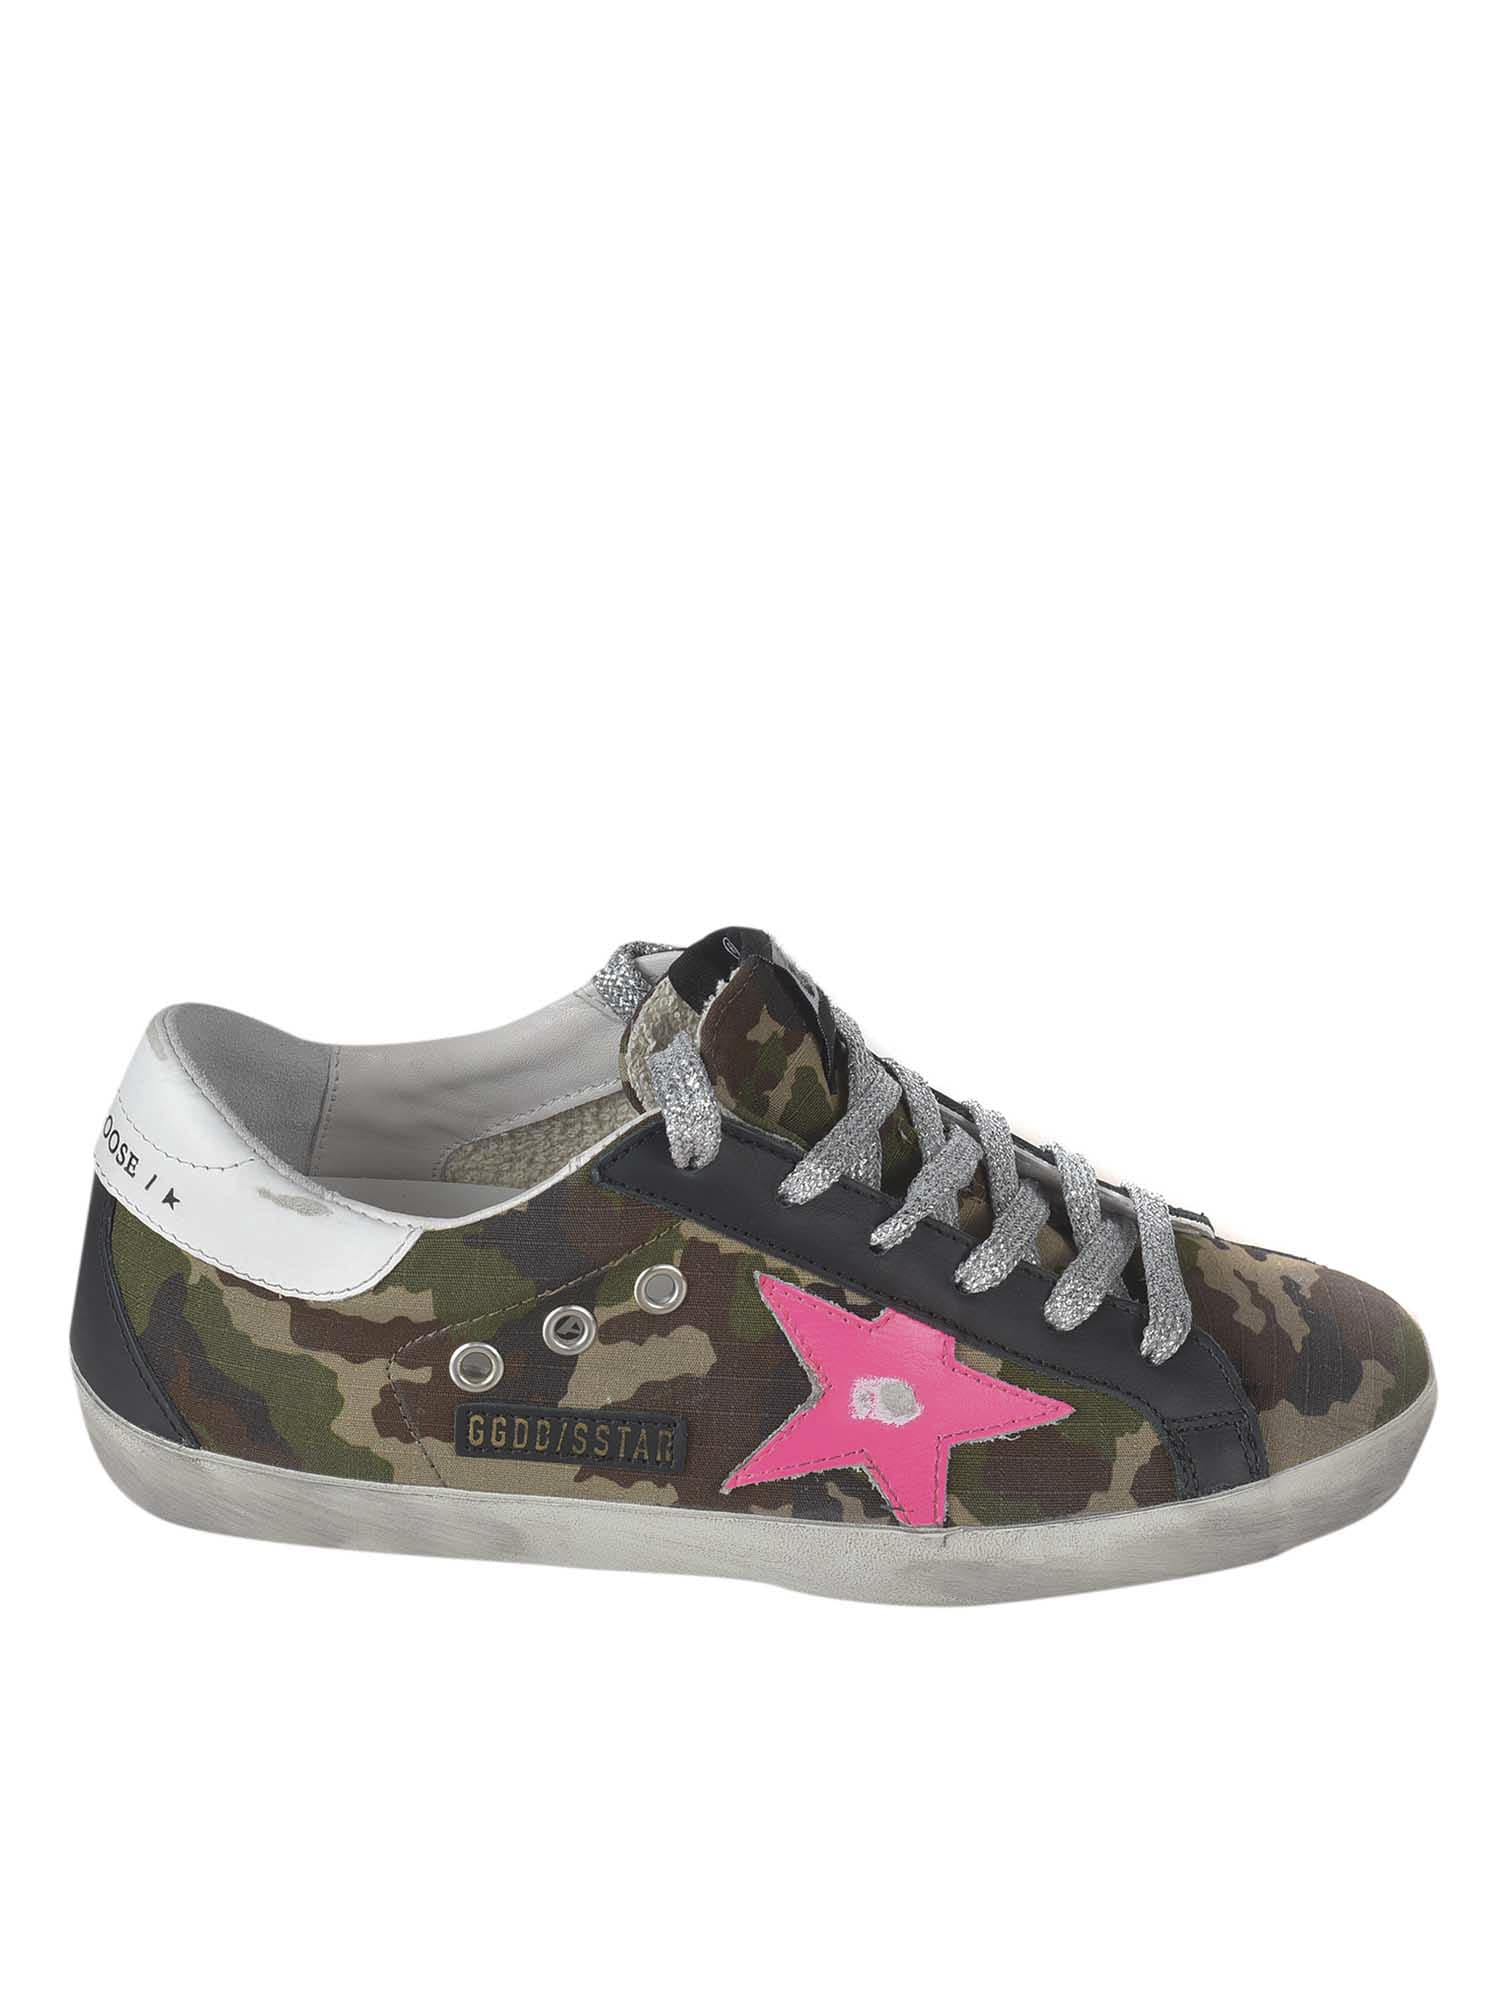 Buy Golden Goose Camouflage Superstar Sneakers online, shop Golden Goose shoes with free shipping